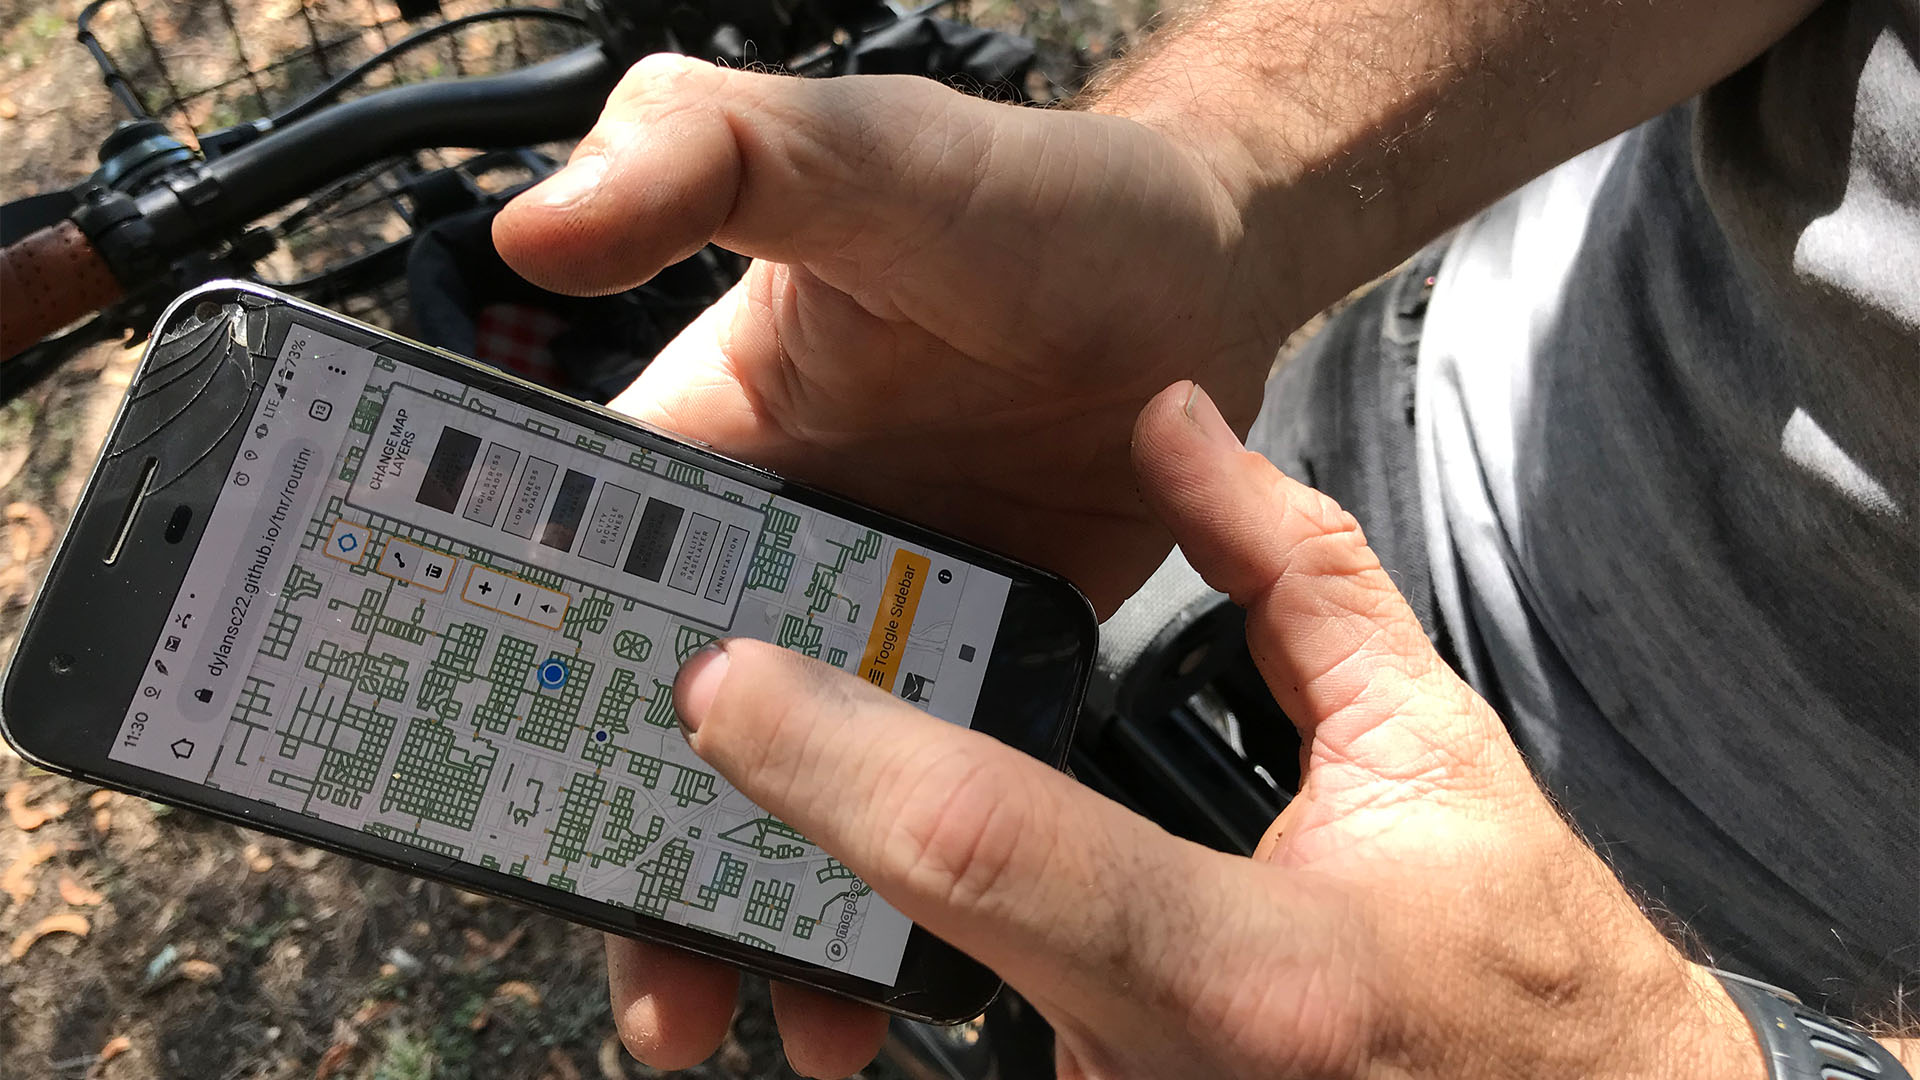 Bike Map Application